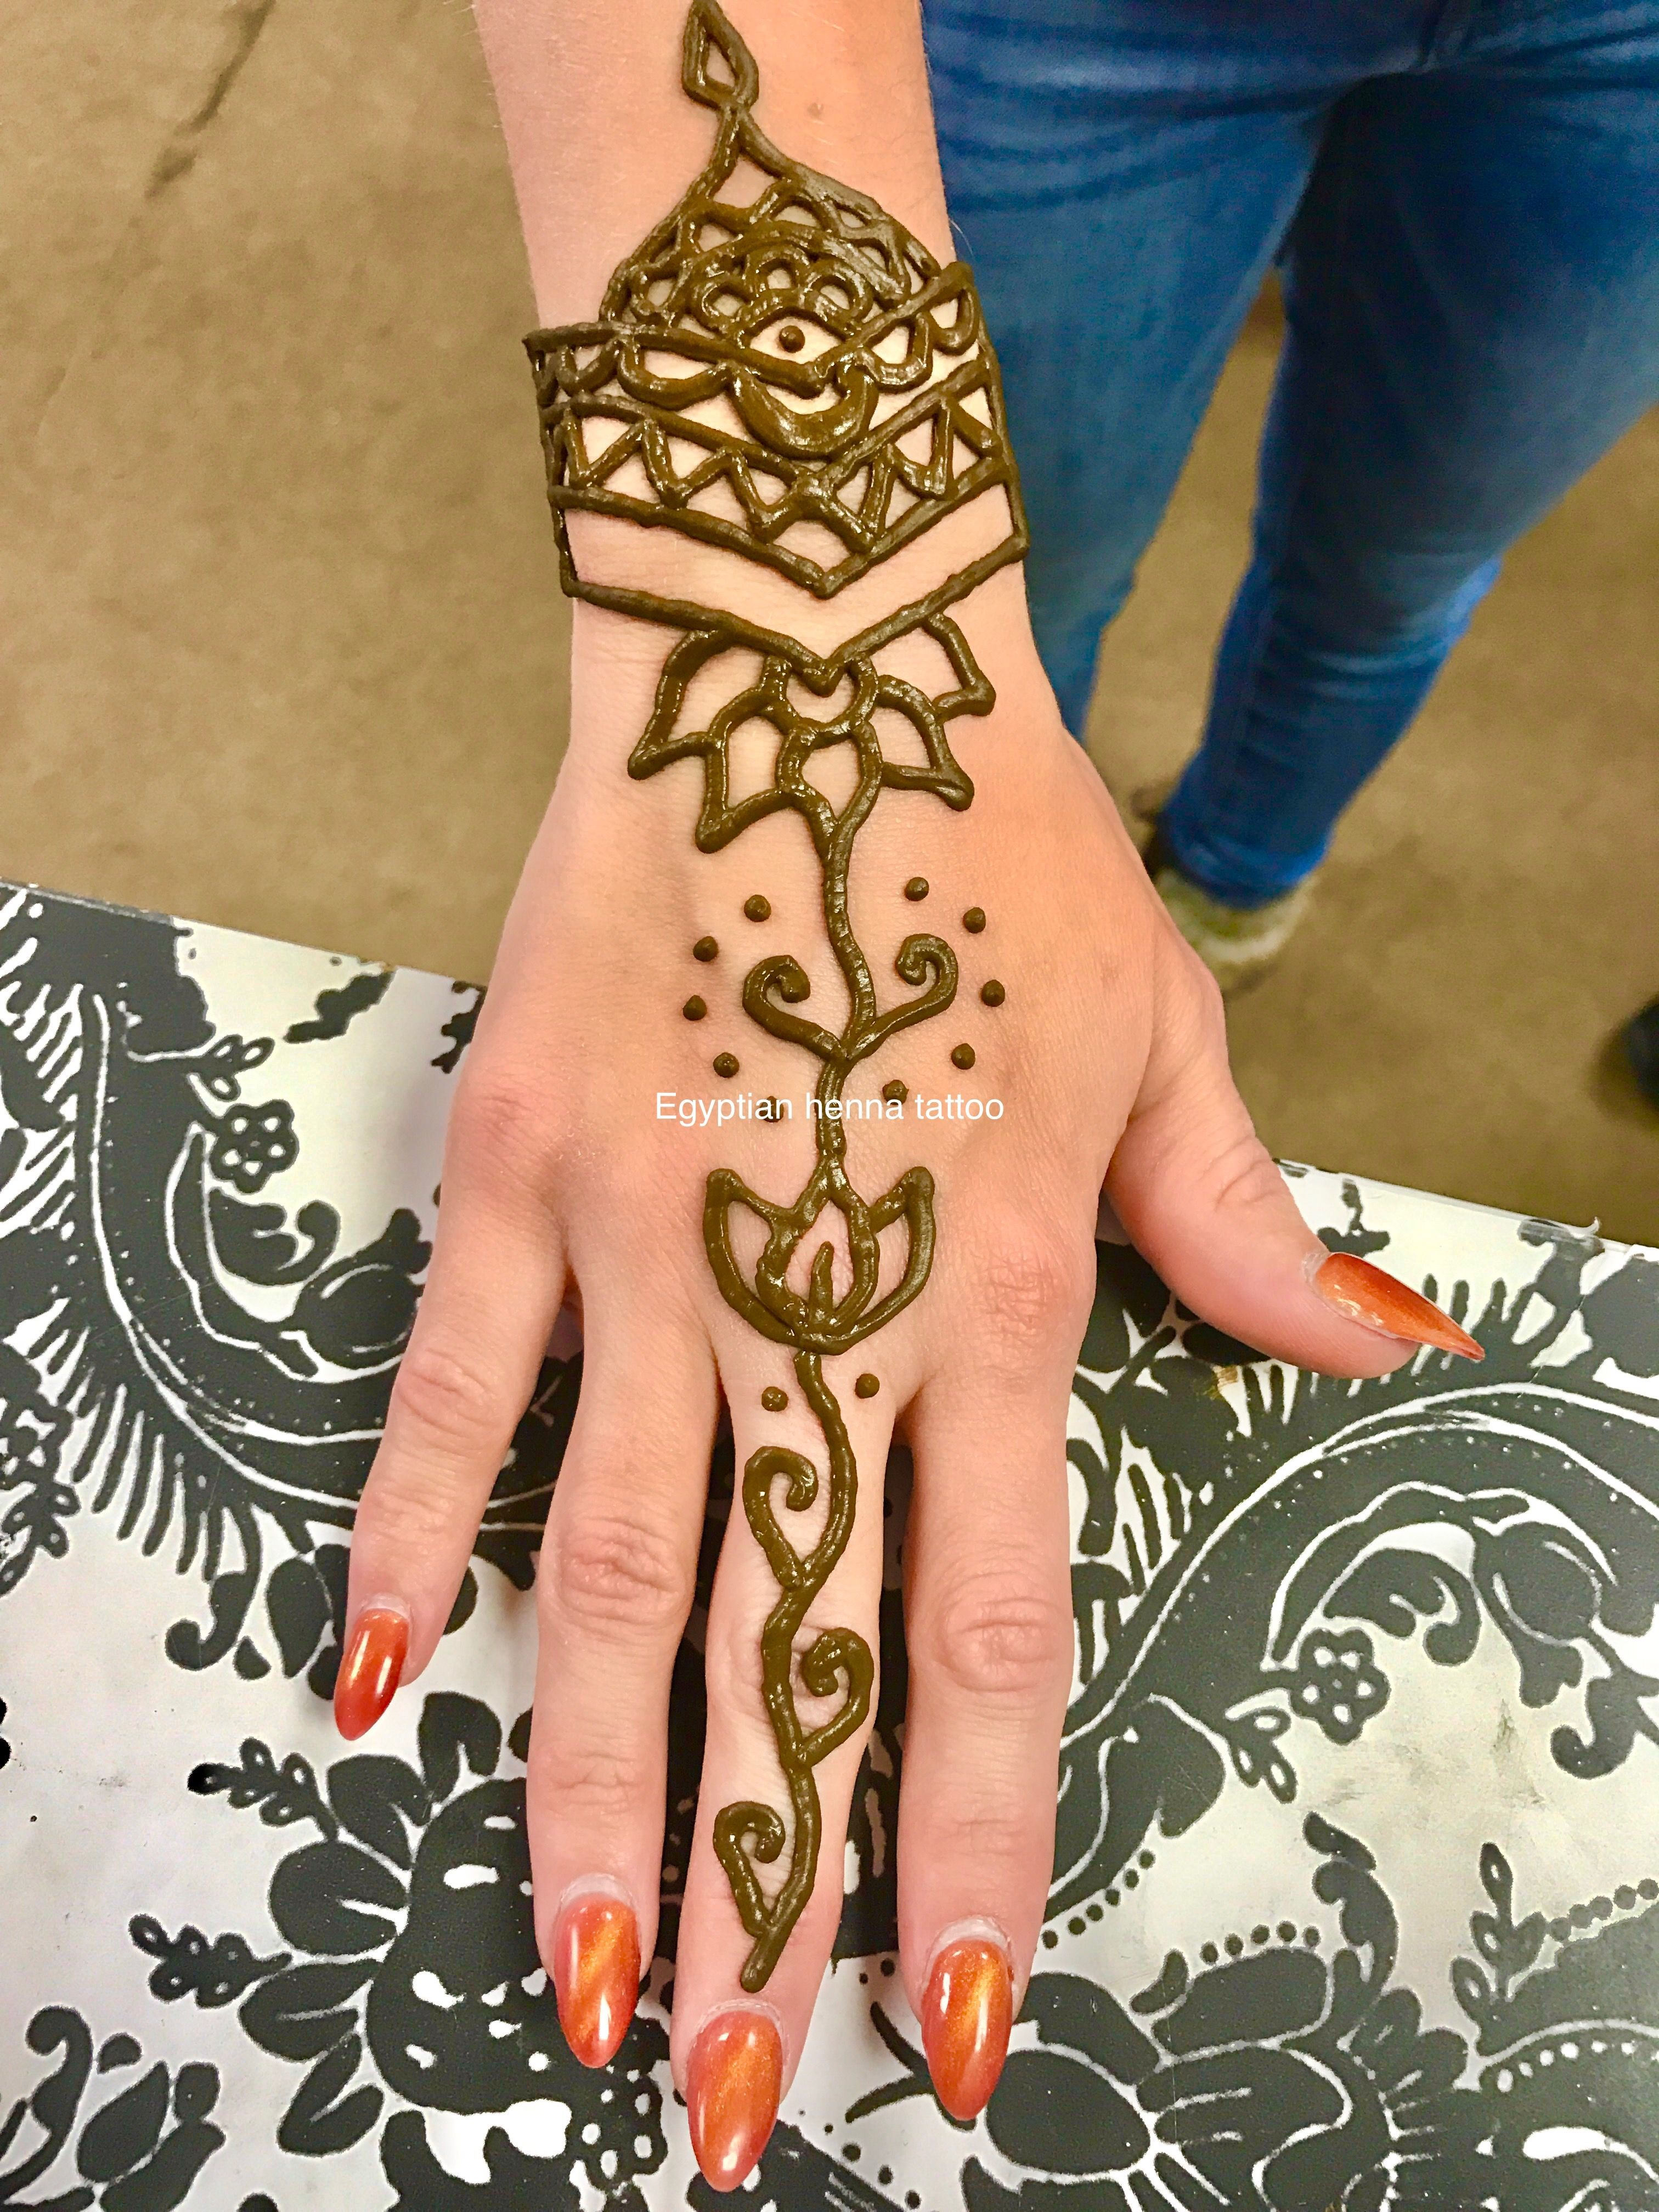 Pin by EGYPTIAN GIFTS on Egyptian Henna Tattoo In Orlando Florida ...